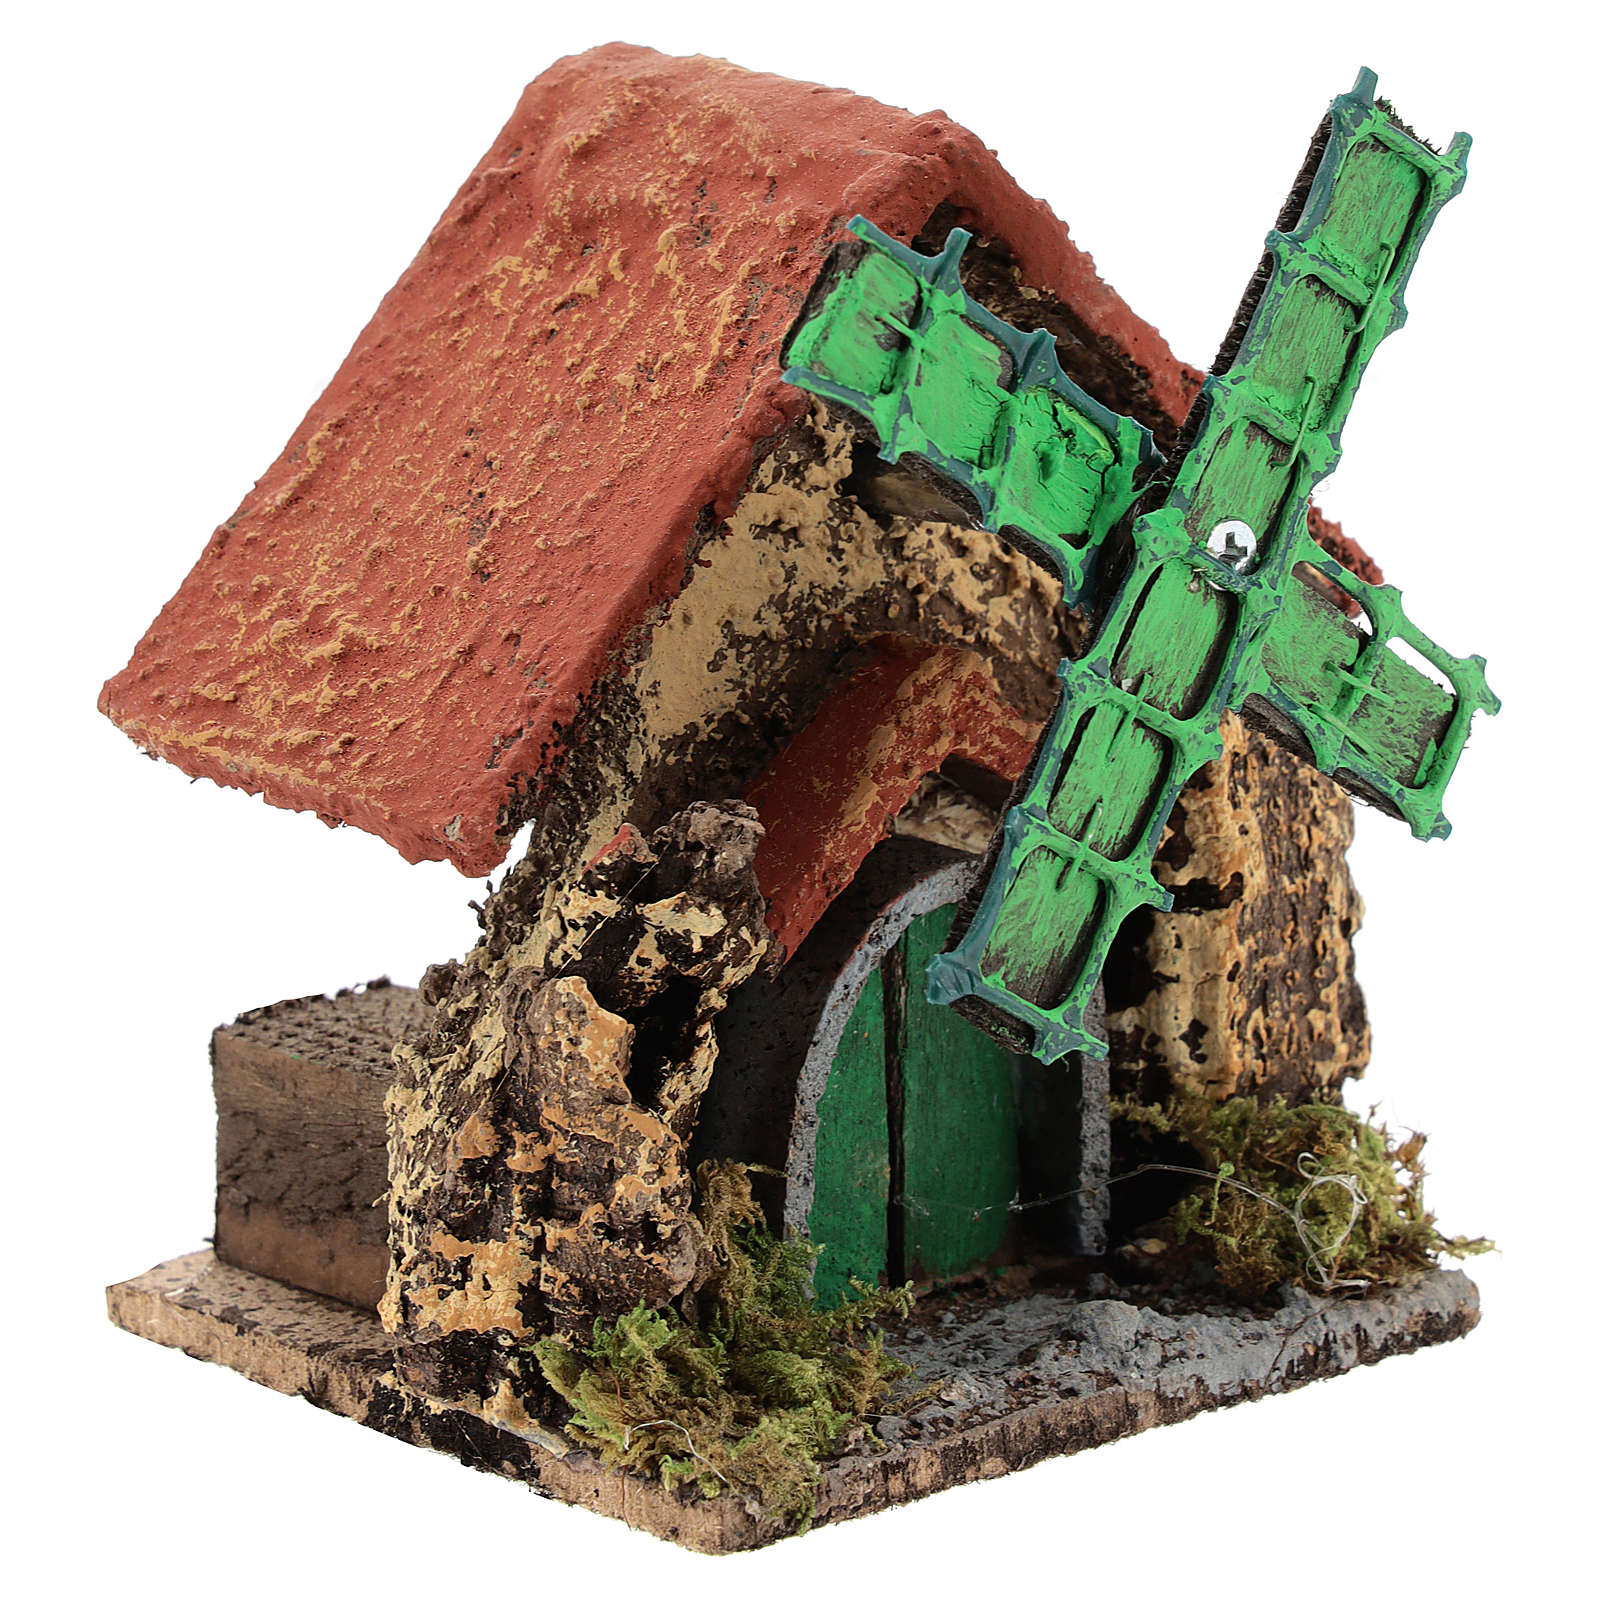 Farmhouse with windmill 10x10x5 cm for Neapolitan Nativity scene of 4-6 cm 4